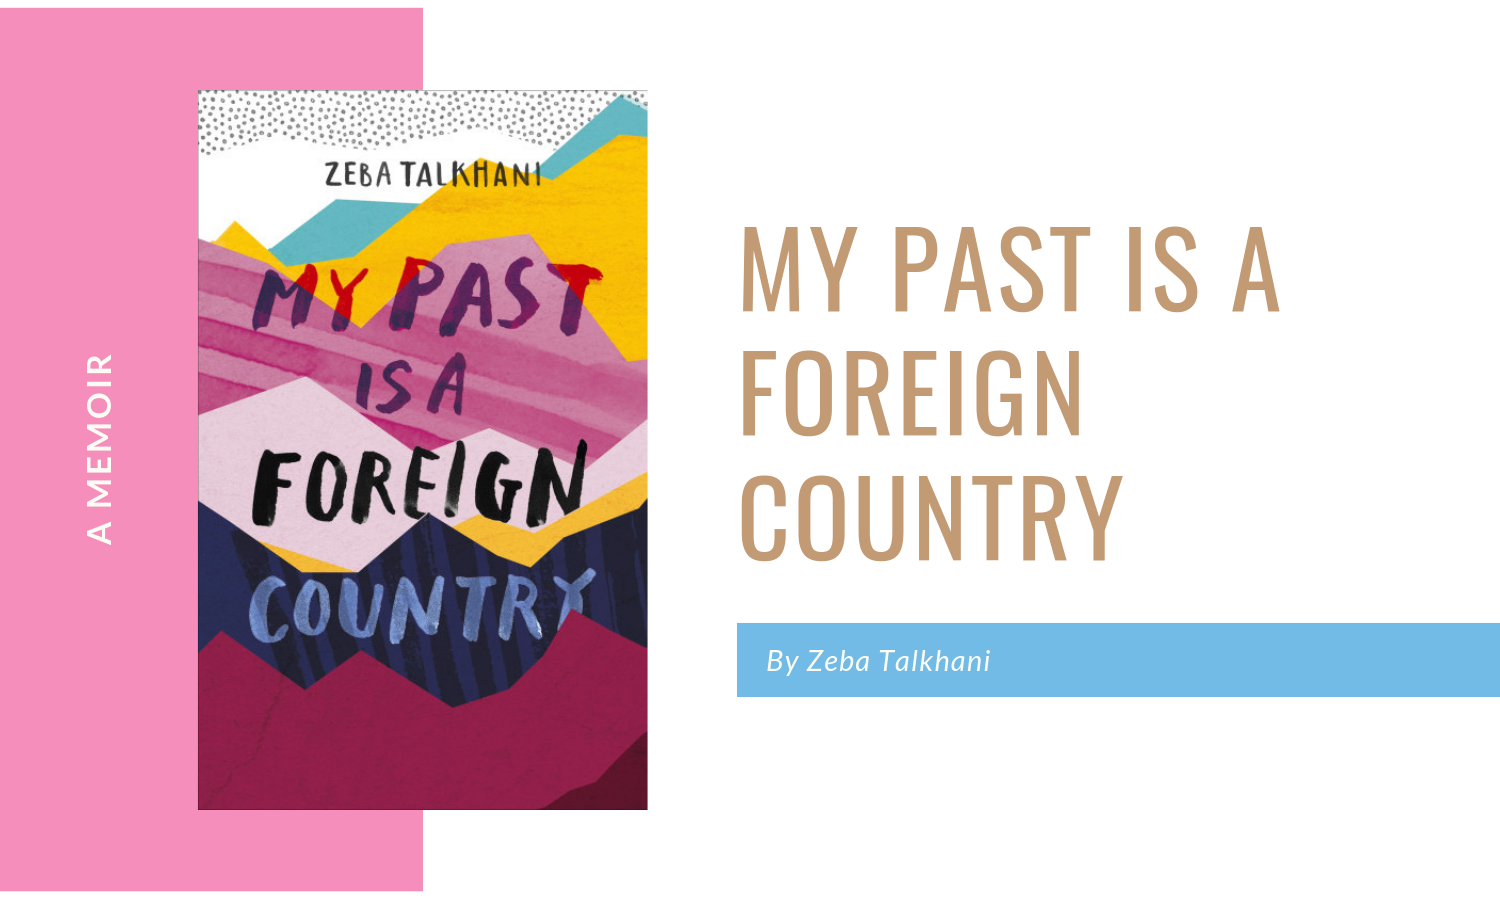 My Past is a foreign country book review